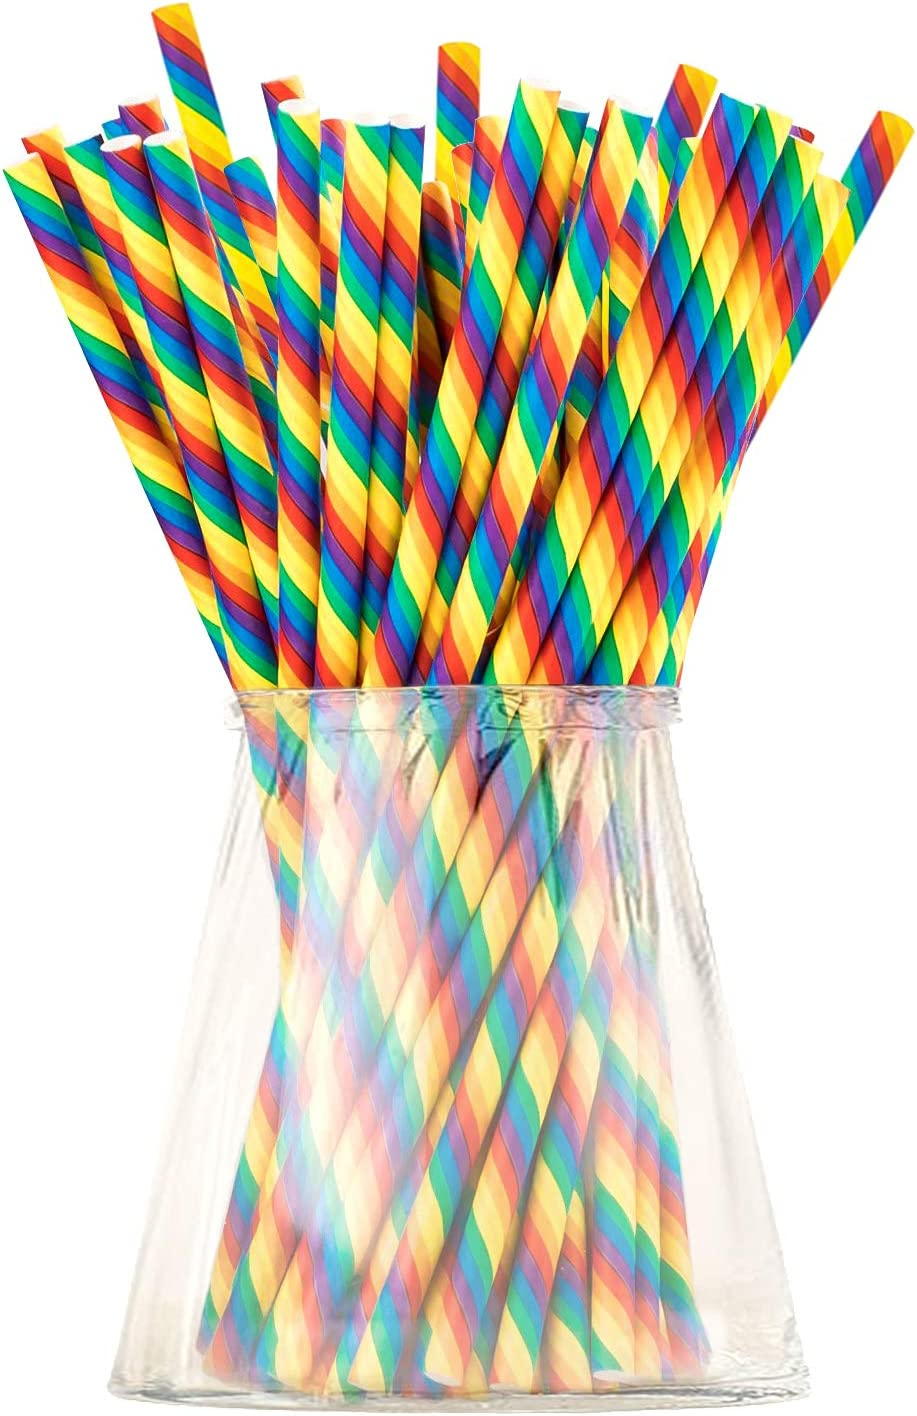 Biodegradable Rainbow Paper Straws for Party Supplies, Birthday, LGBTQ, Gay Pride Day, Wedding, Anniversary Decorations and Holiday Celebrations - Eco-Friendly Drinking Straws (Rainbow, 320)